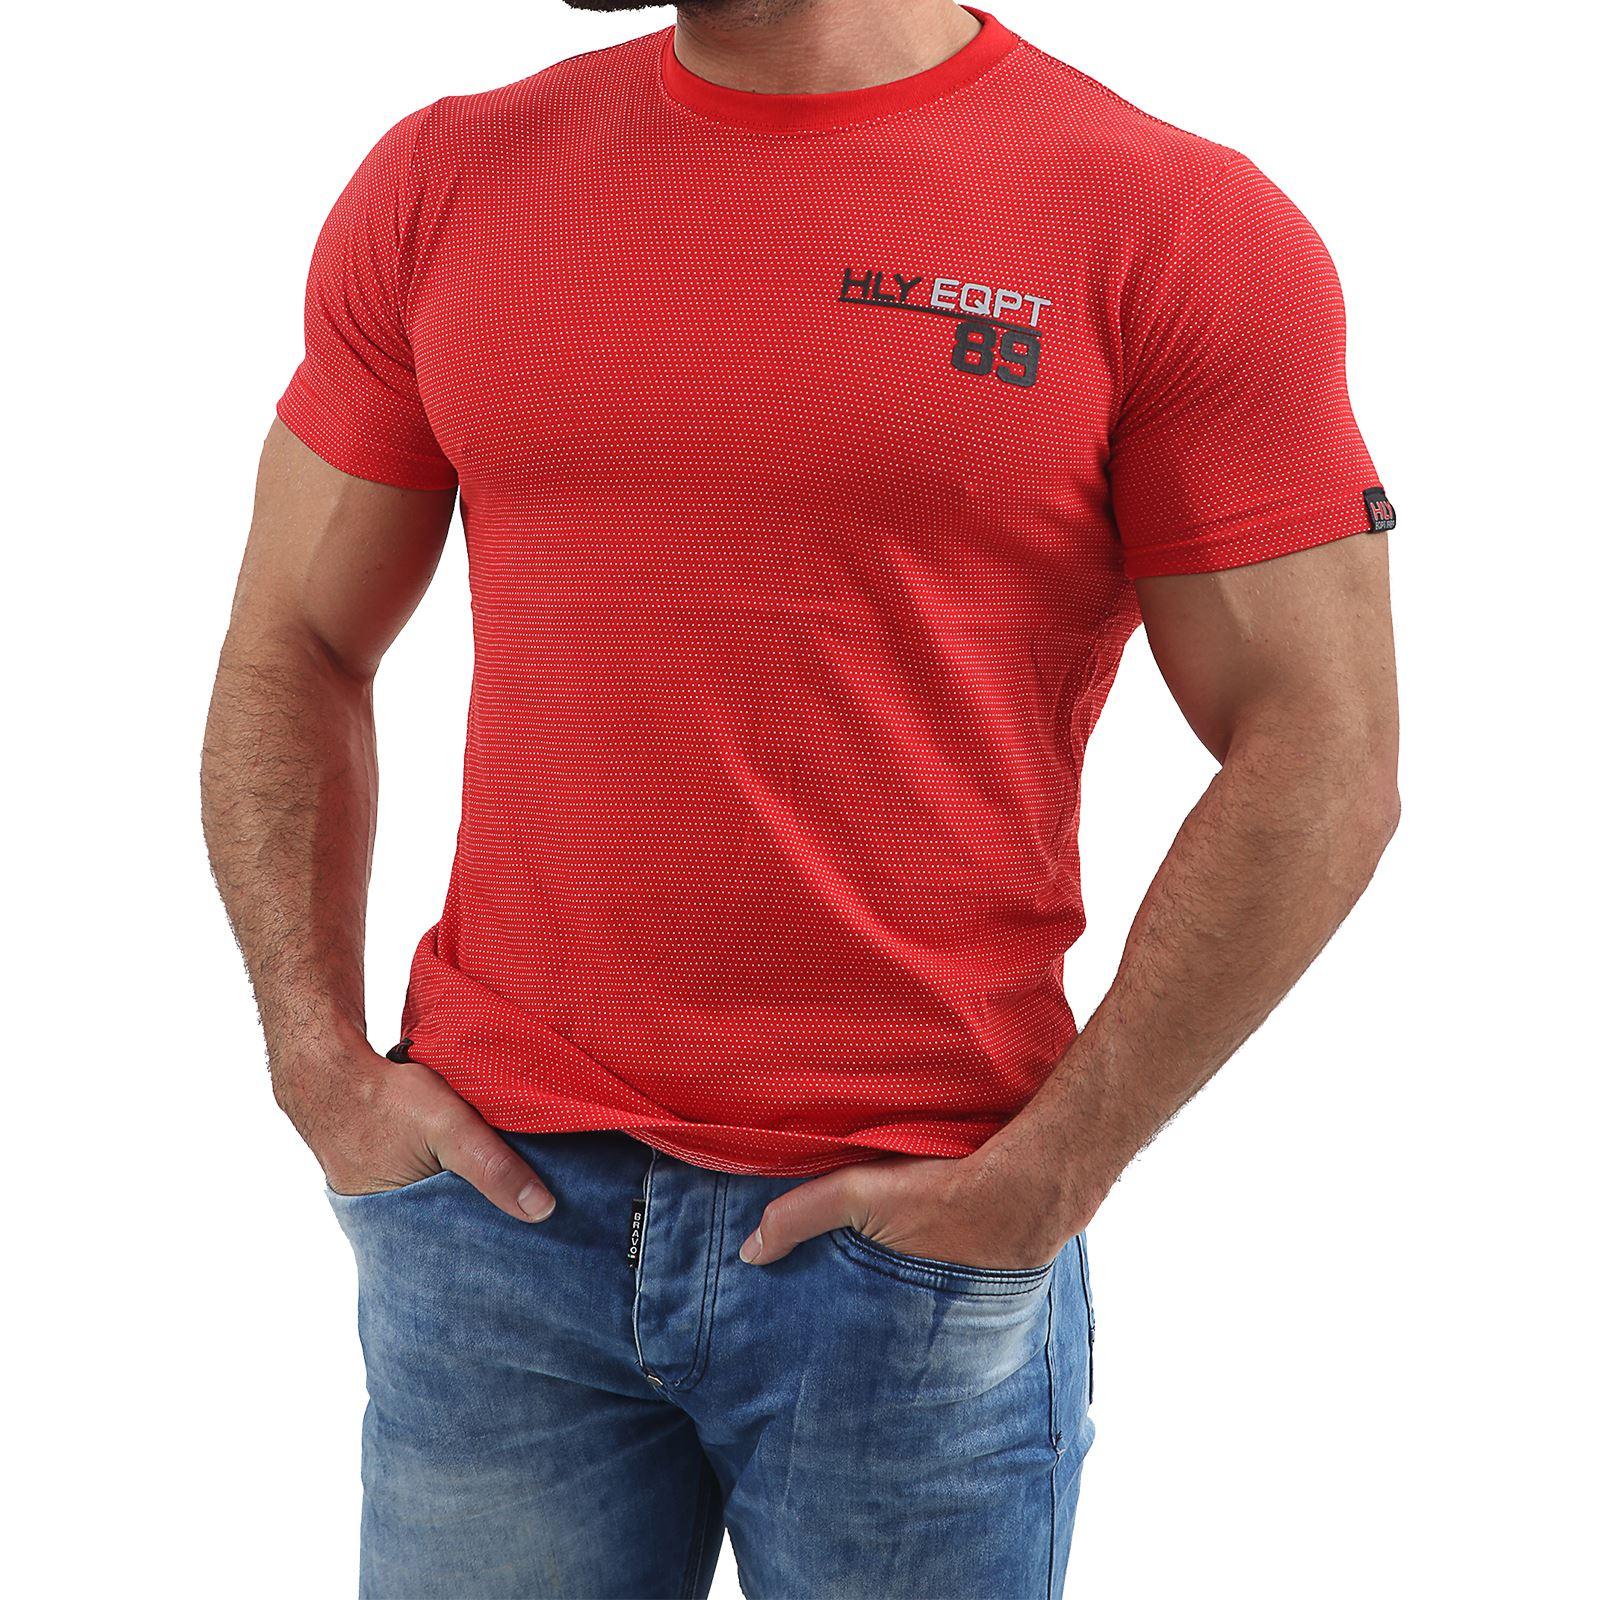 Mens-HLY-EQPT-Printed-T-Shirt-100-Cotton-Gym-Athletic-Training-Tee-Top-Summer thumbnail 43